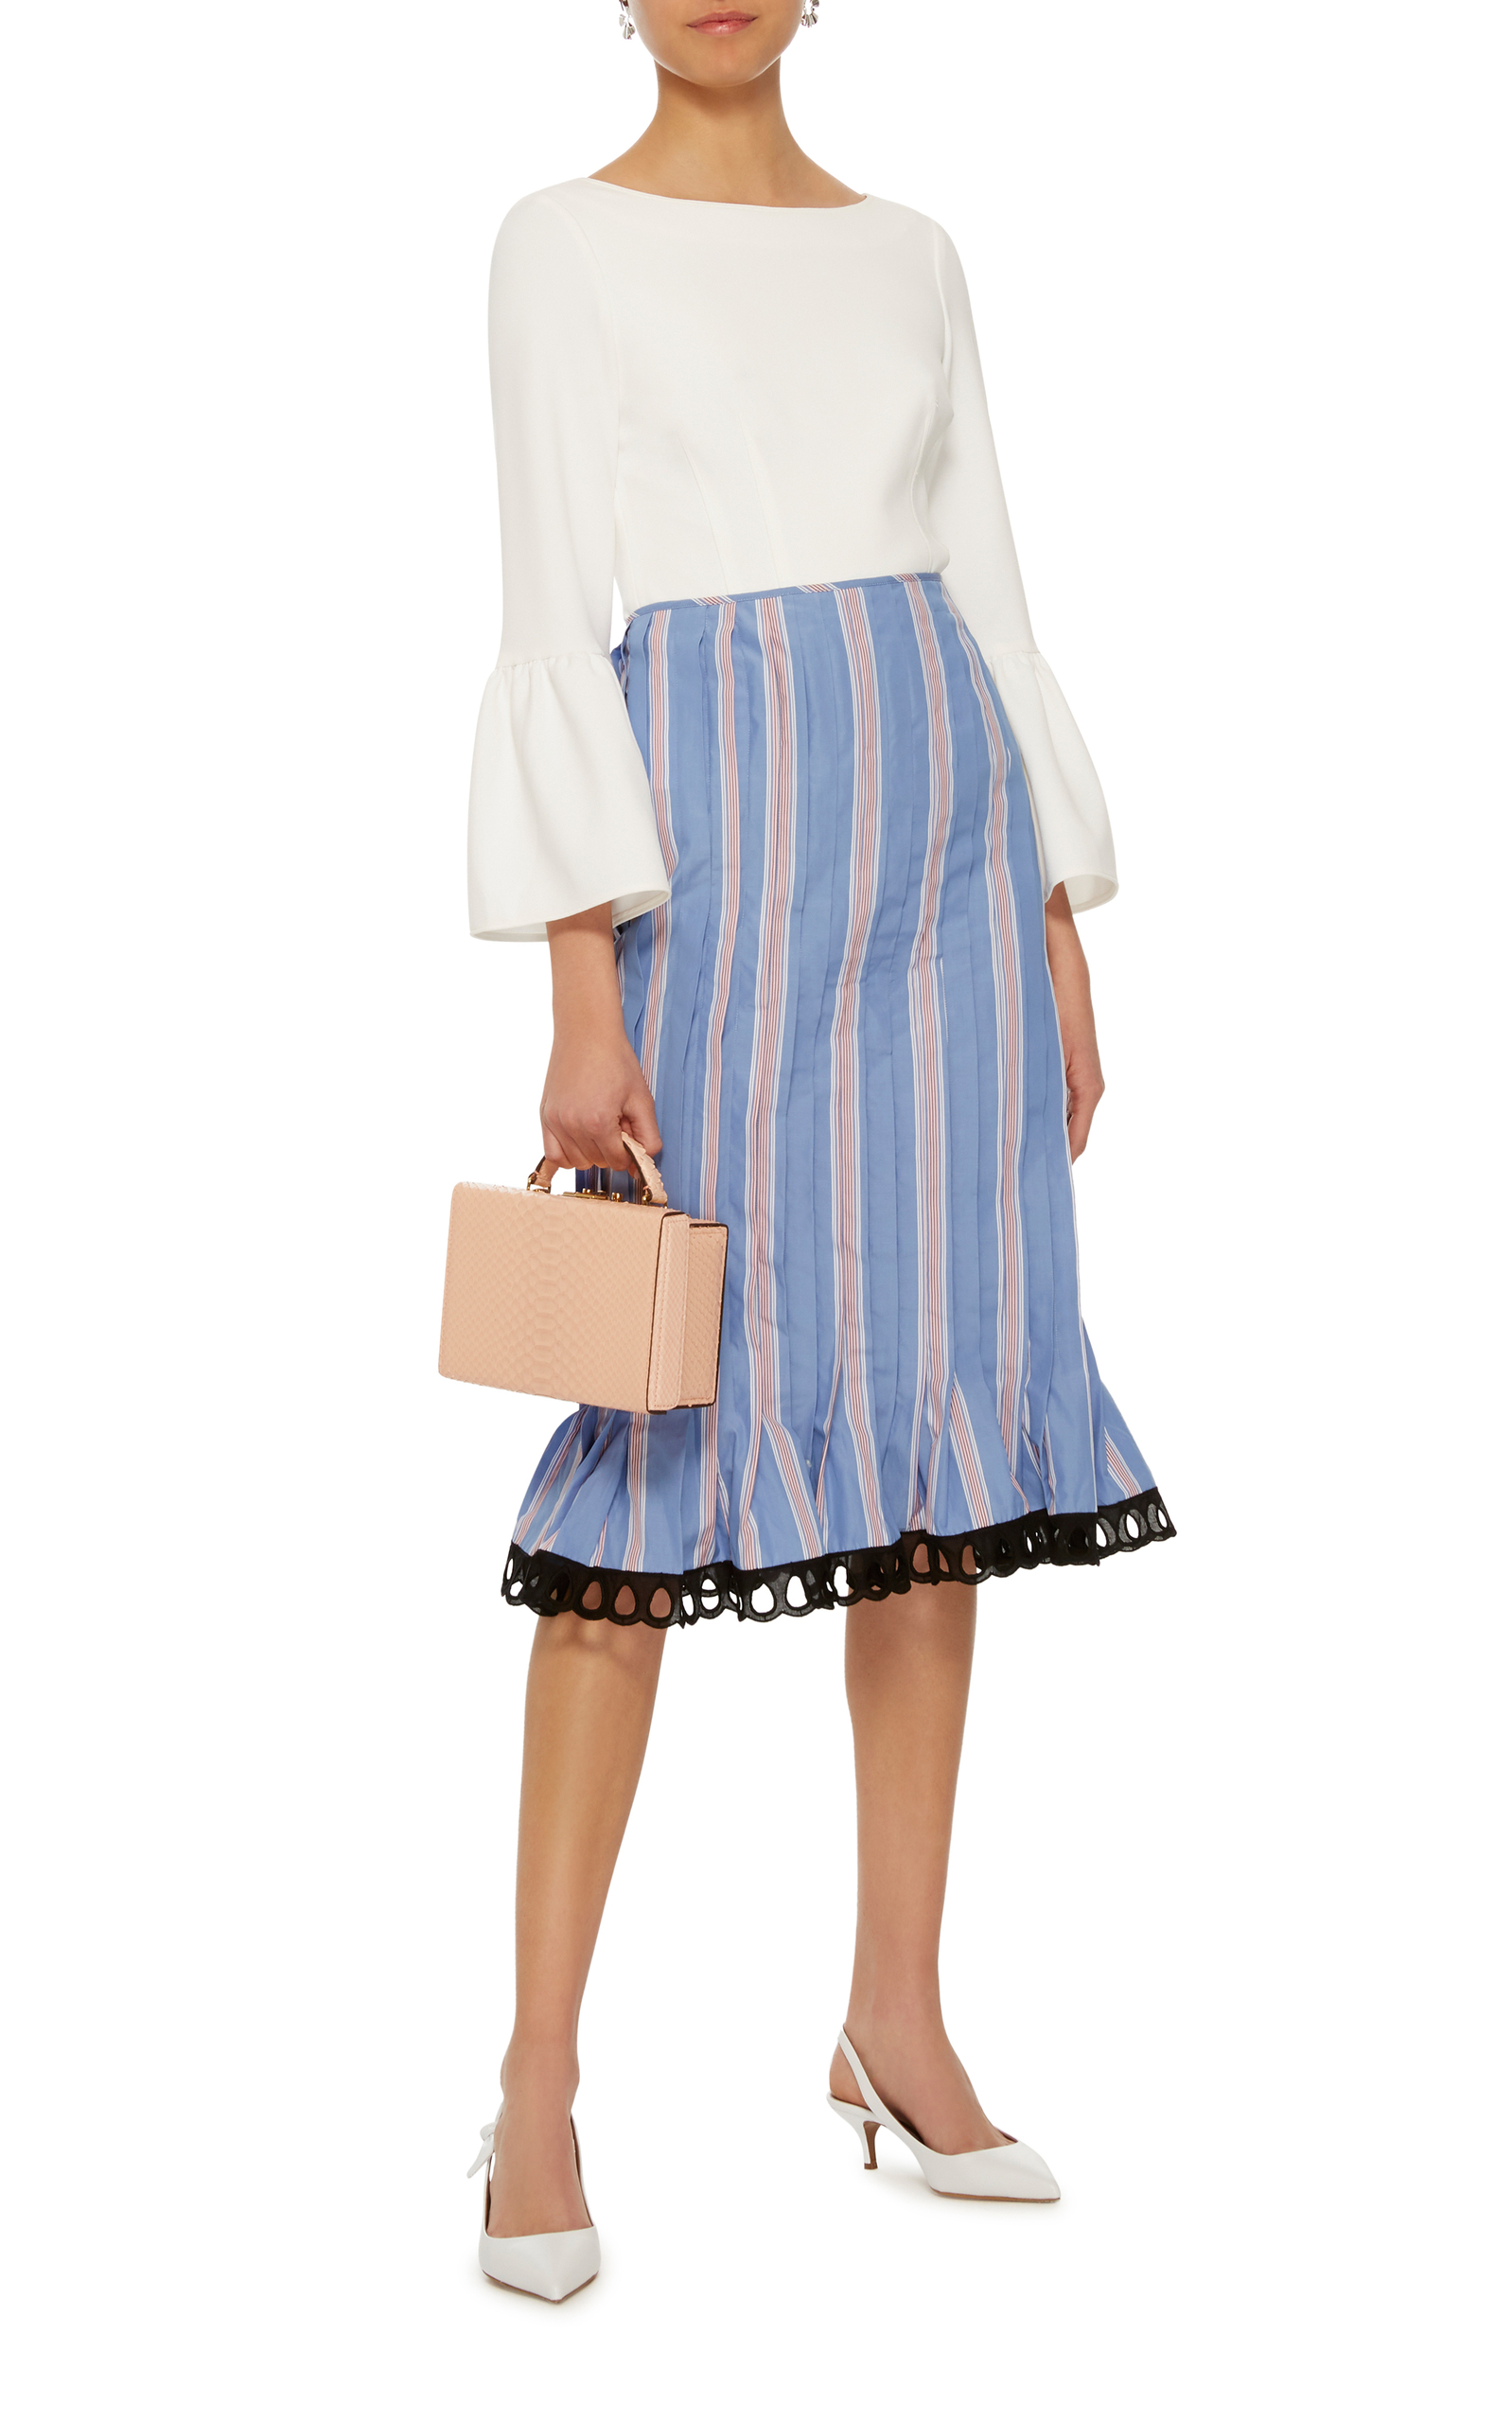 High Waist Striped Skirt Marni Limited Edition Cheap Online Free Shipping Marketable Outlet Cheap Online geyjqiO9Mb